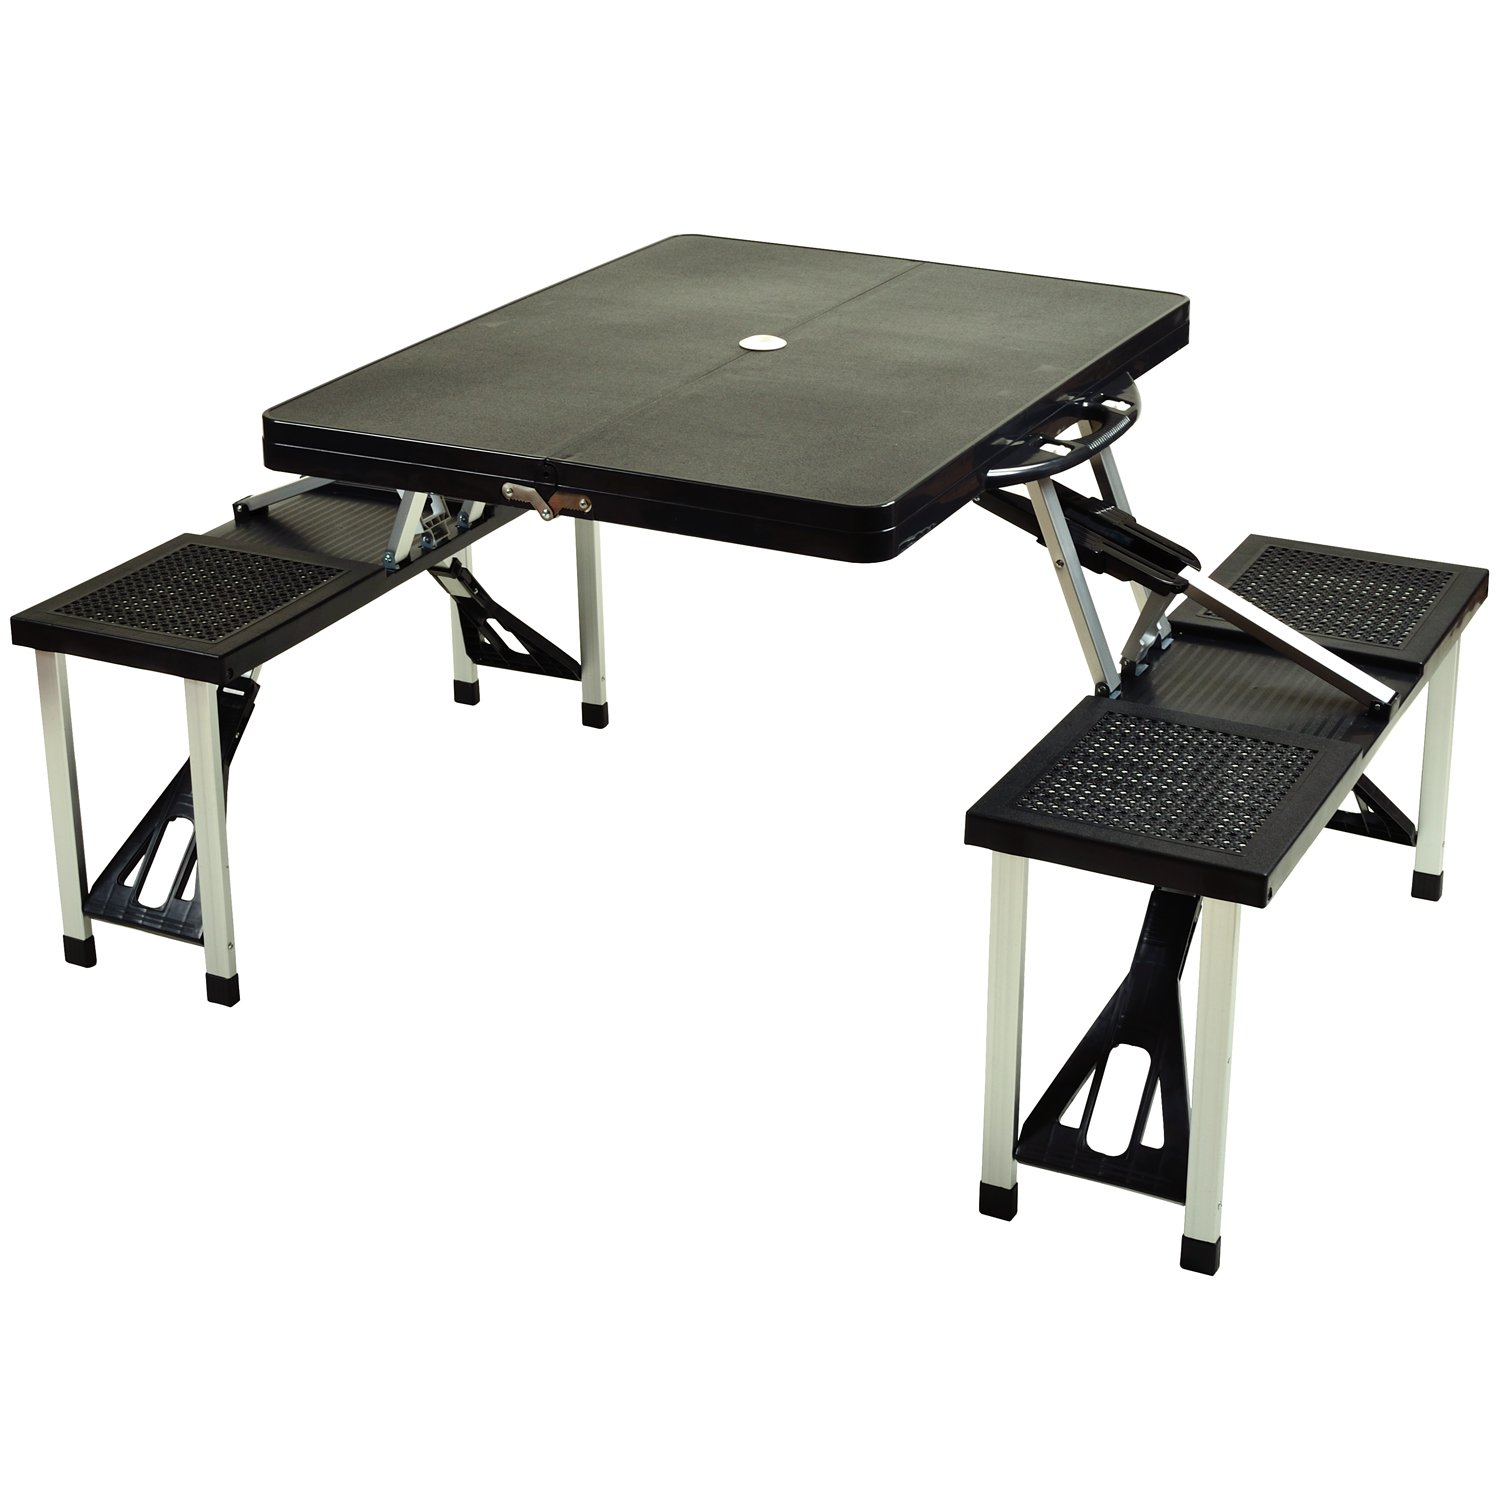 amazoncom picnic at ascot portable folding outdoor picnic table with 4 seats black folding table and bench set patio lawn u0026 garden - Folding Table And Chairs